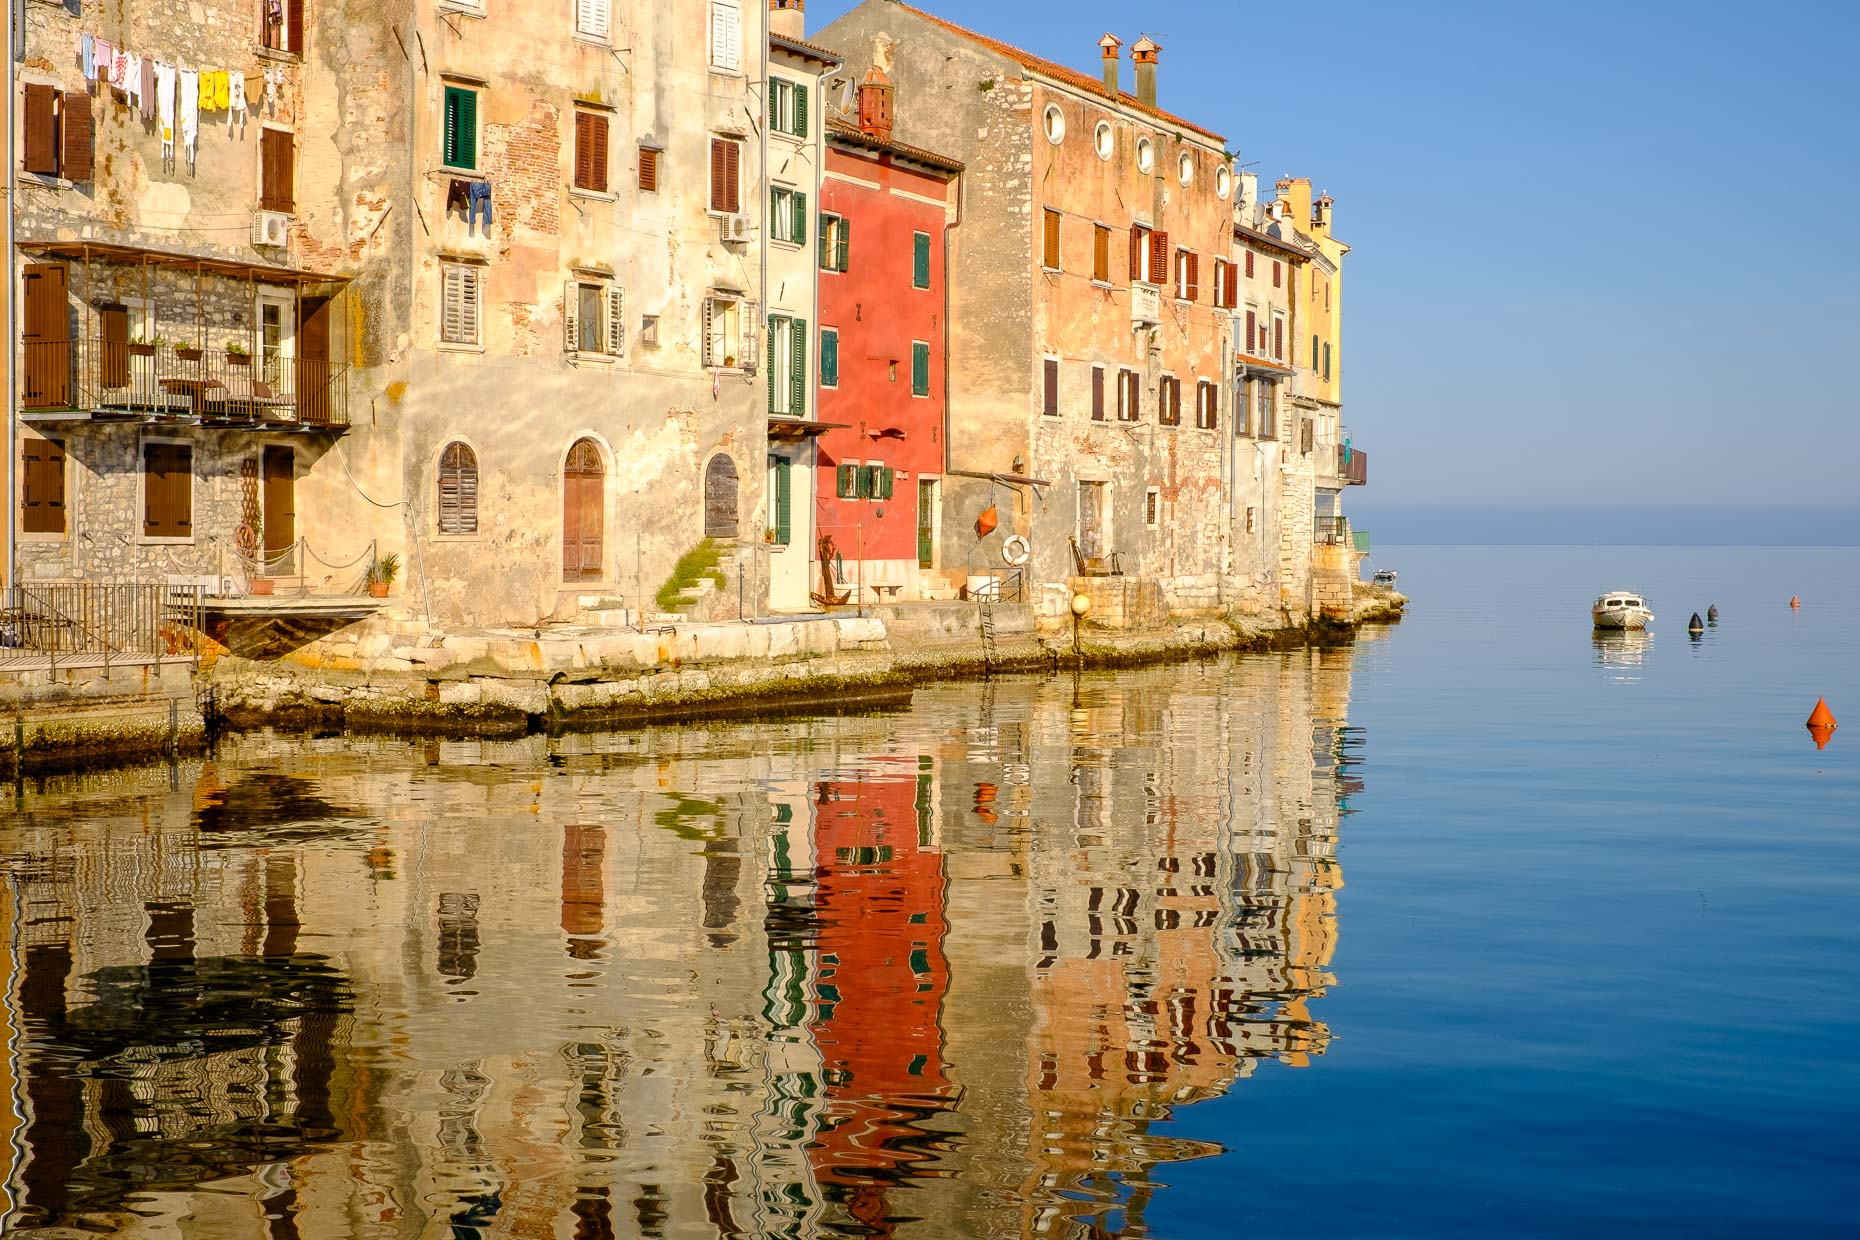 Building reflection at Rovinj, Croatia